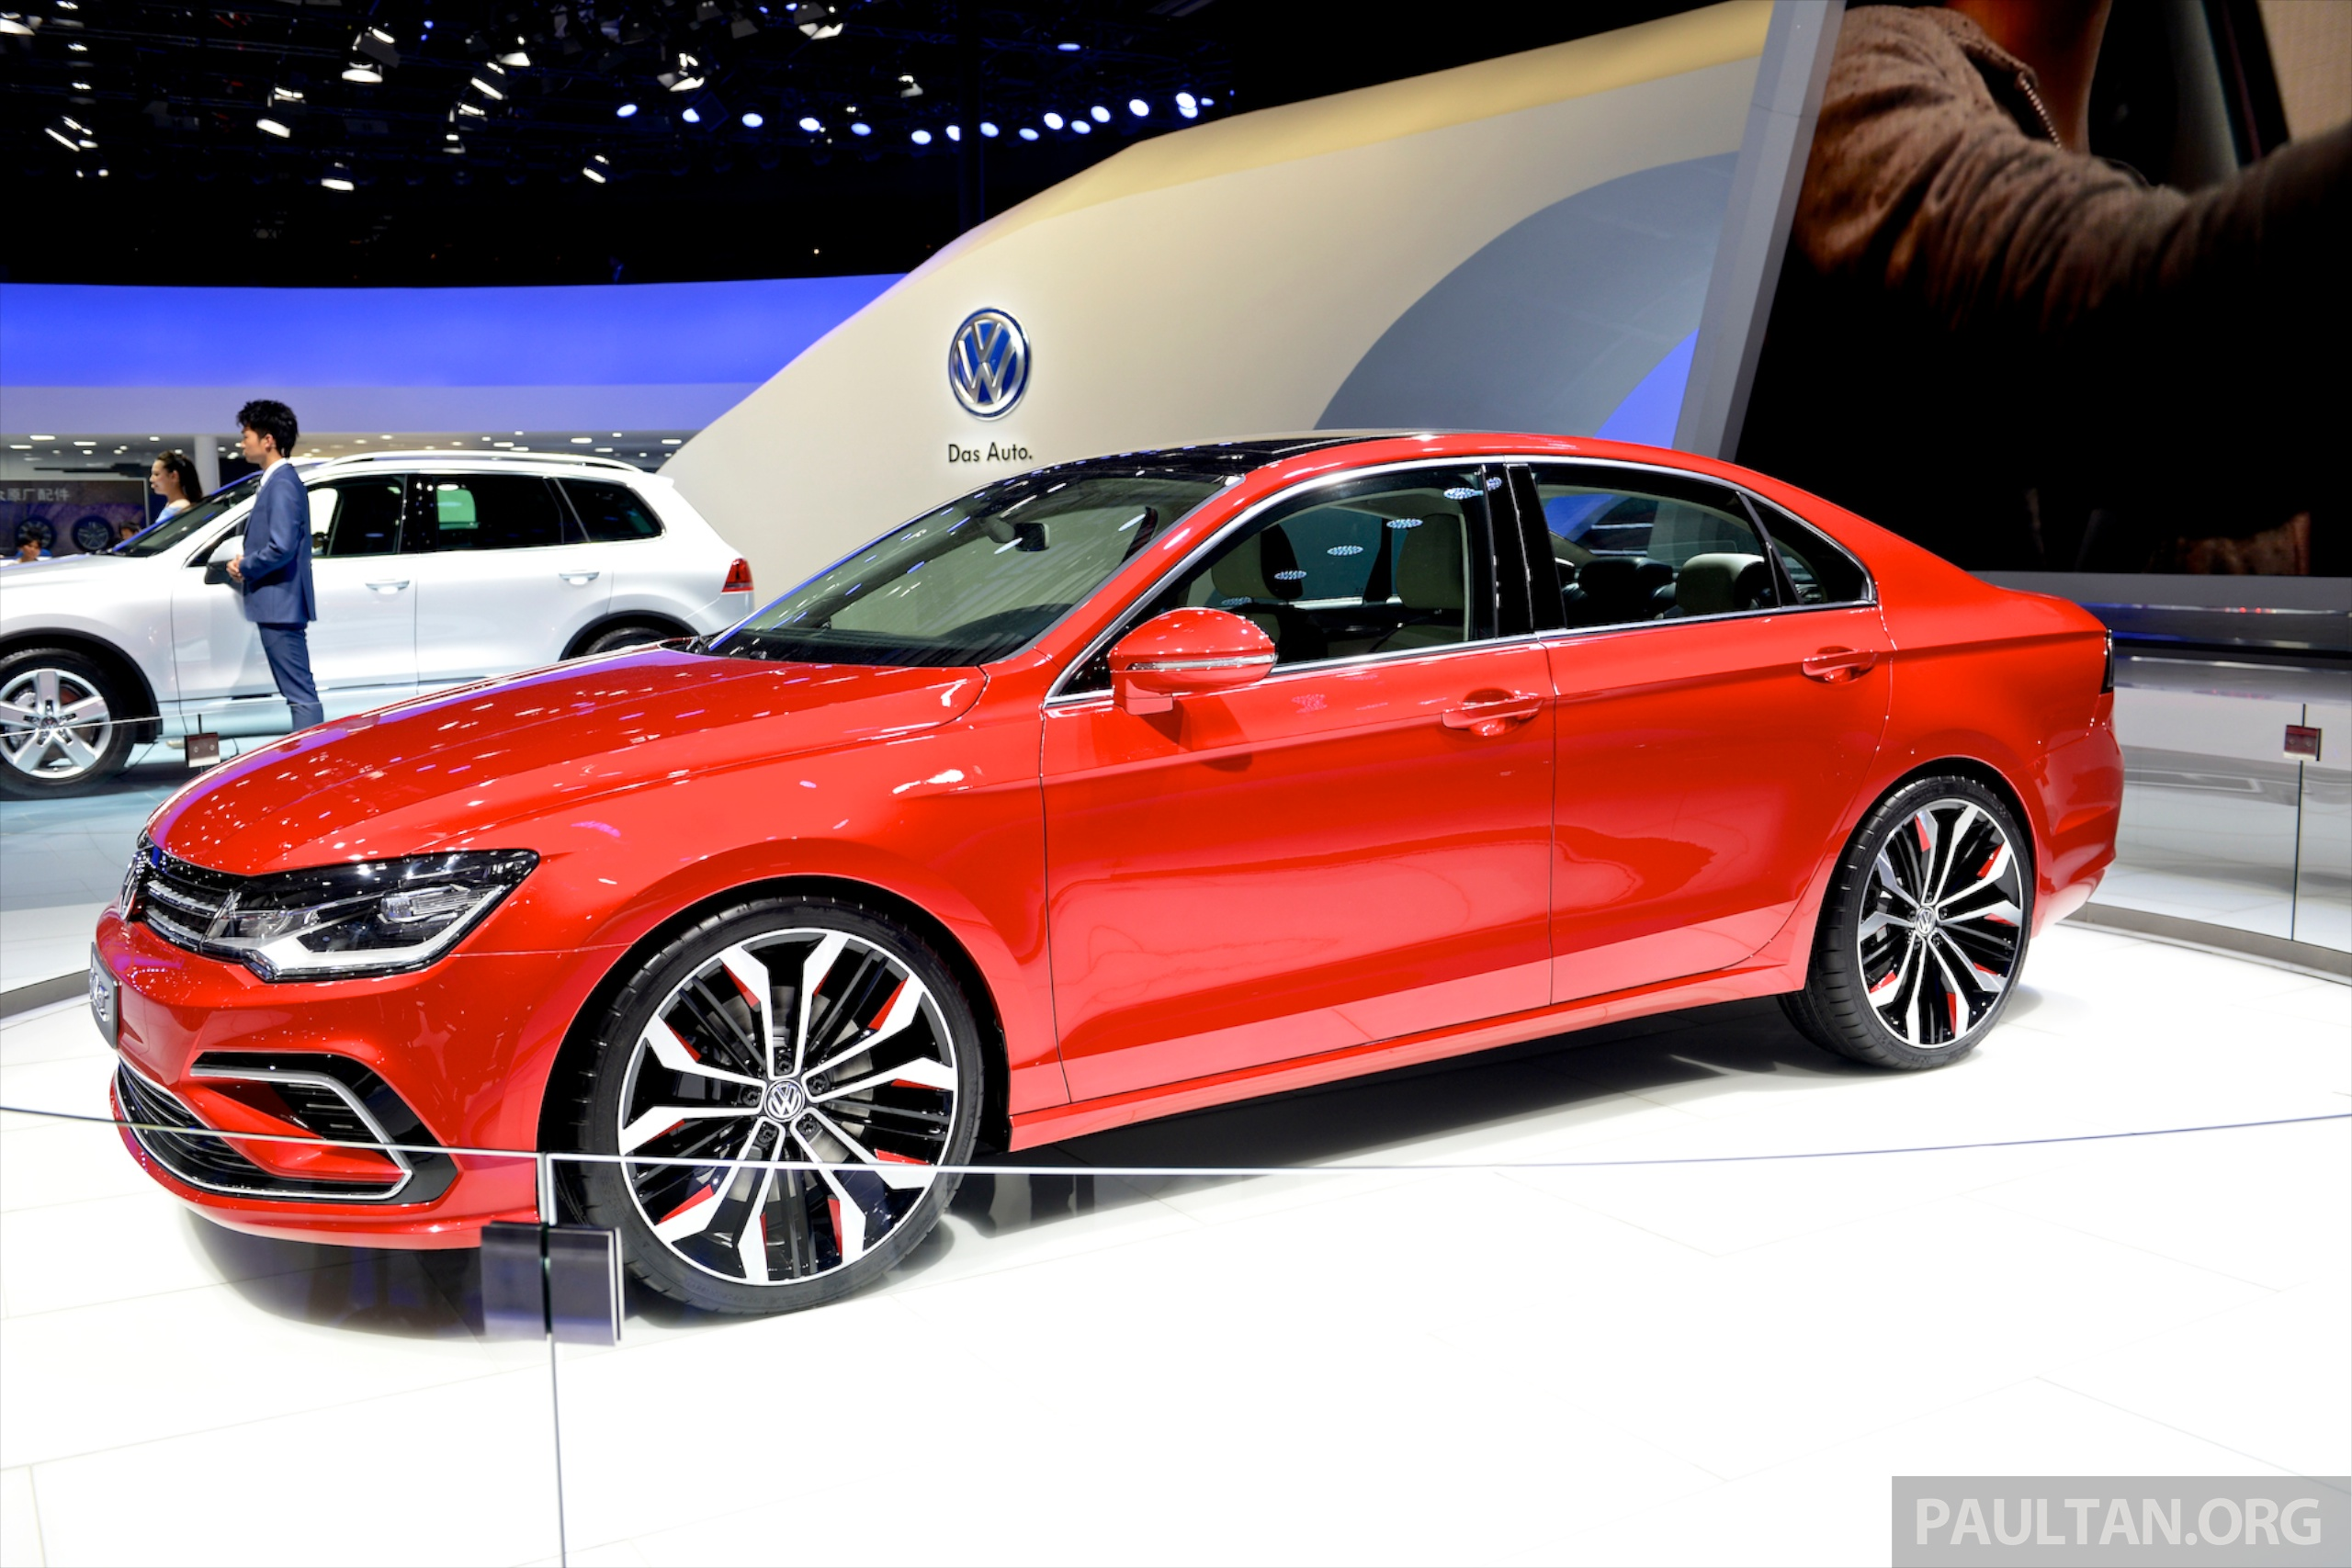 Volkswagen New Midsize Coupe Concept Is A Junior Cc Image